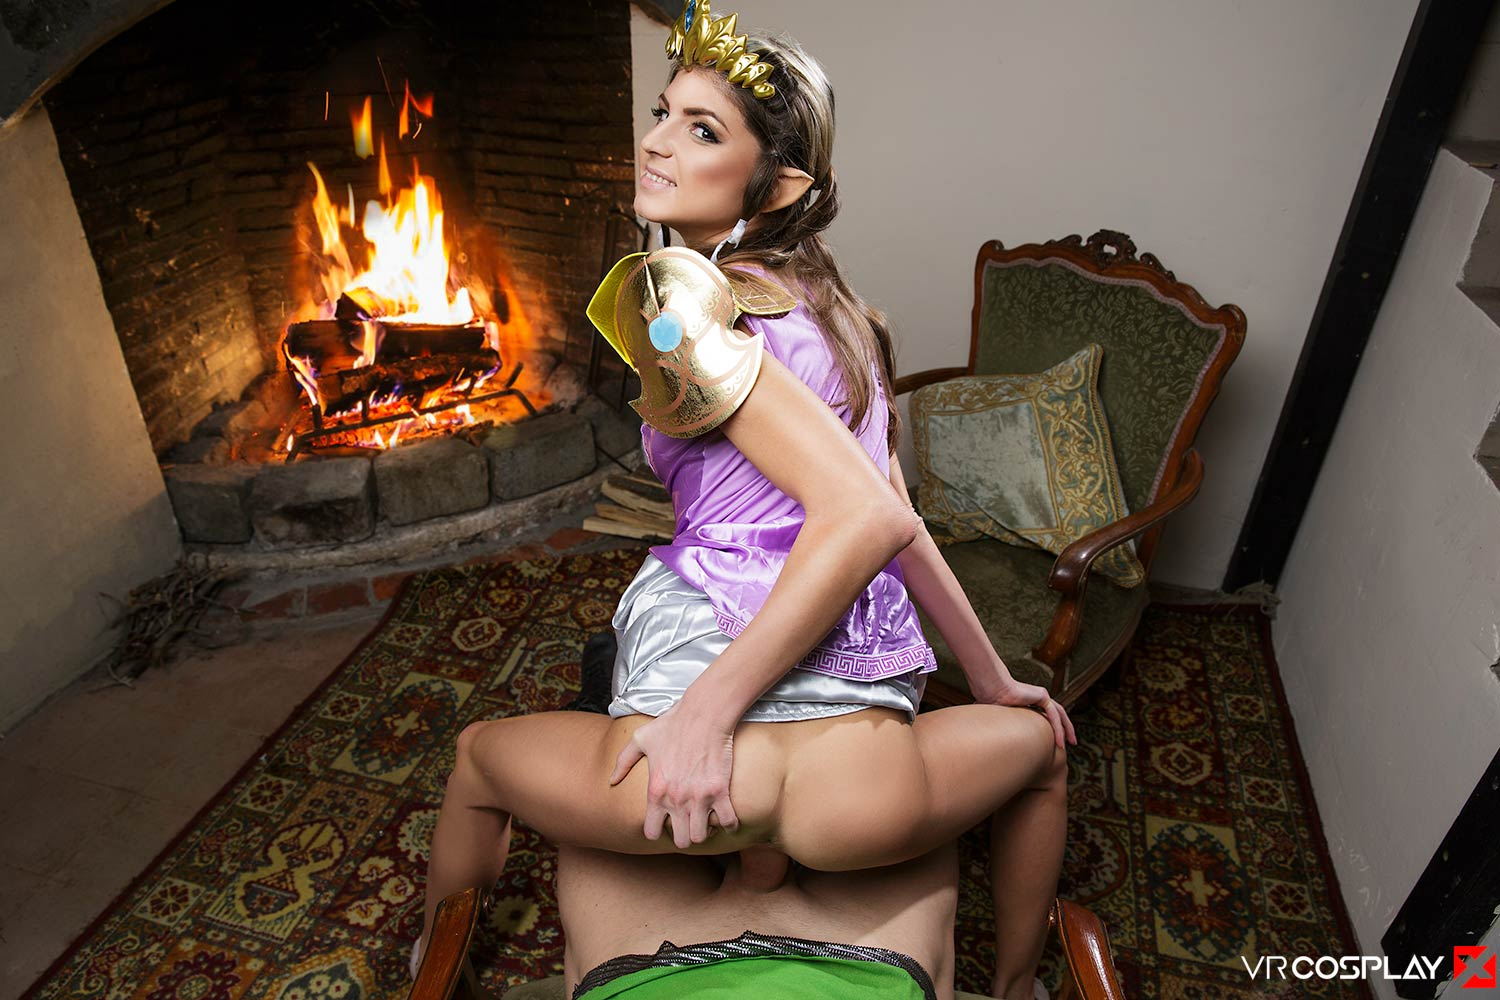 The Legend of Zelda VR Porn Cosplay starring Gina Gerson as Princess Zelda